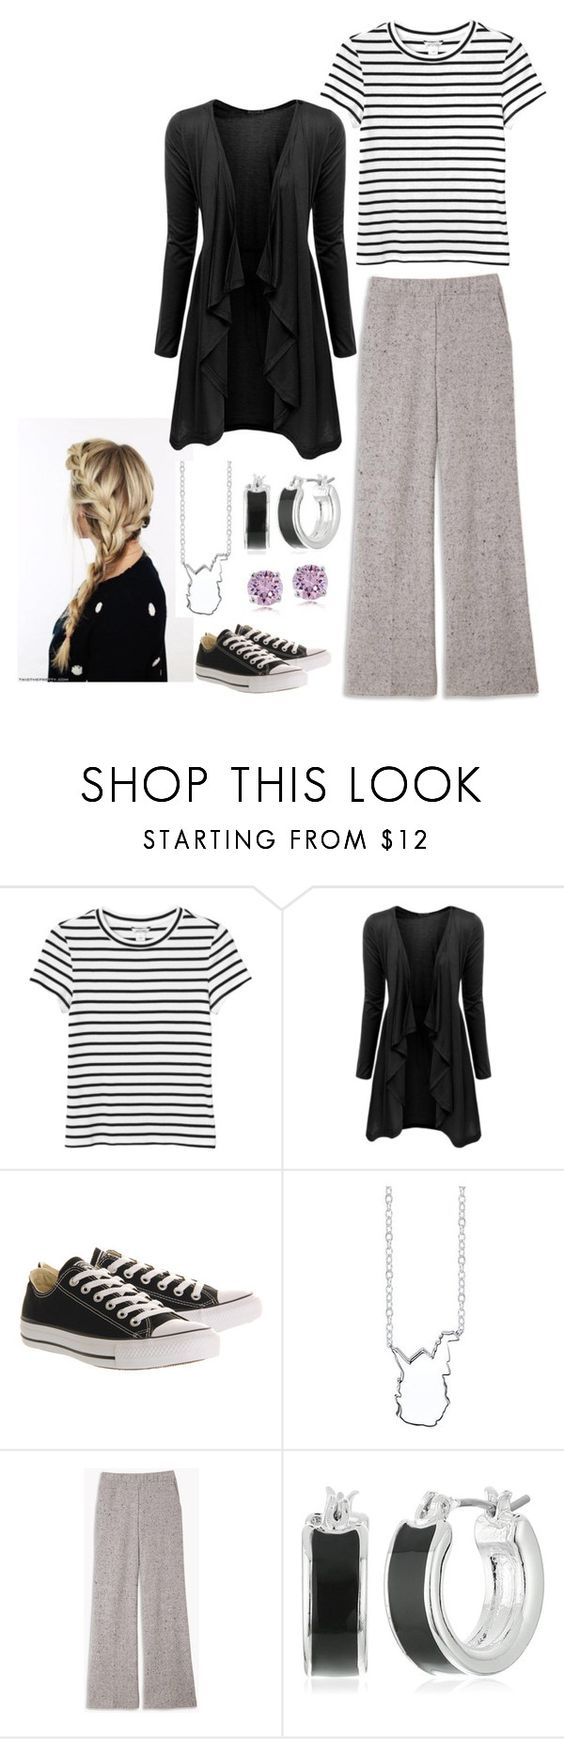 """Thursday"" by mountain-girl-lynn ❤ liked on Polyvore featuring Monki, Doublju, Converse, Bridge Jewelry and Napier"